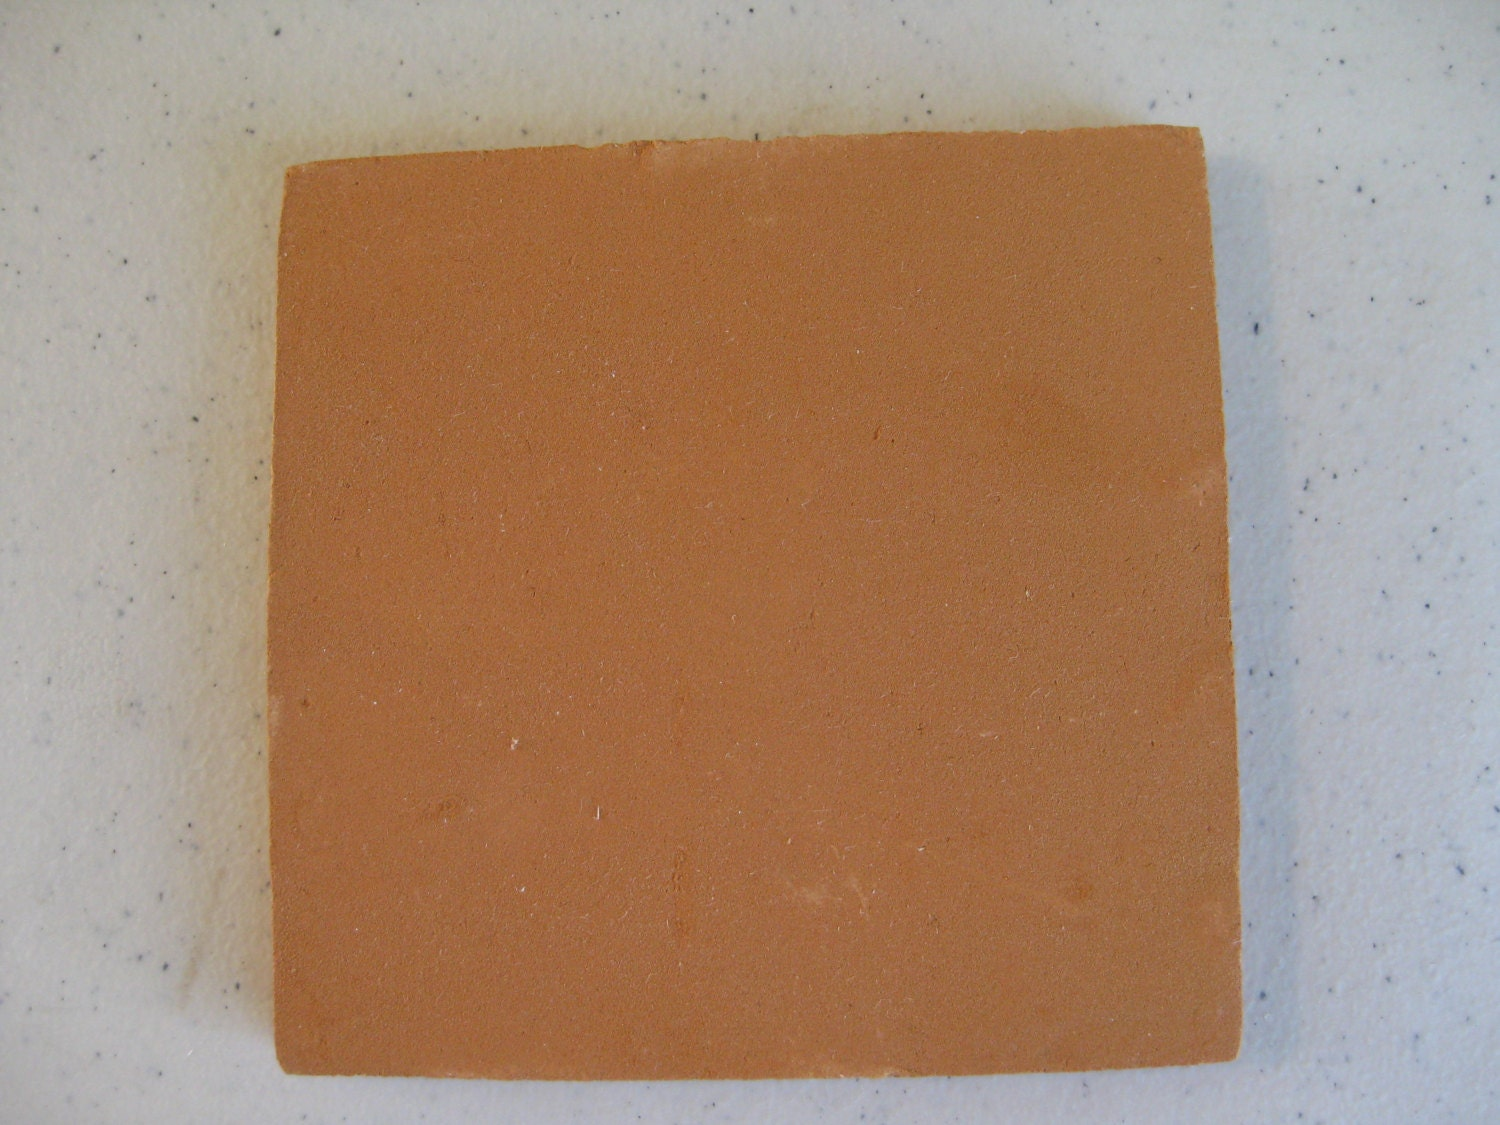 50 unfinished bisque tile talavera terracotta for projects 4x4 zoom dailygadgetfo Choice Image